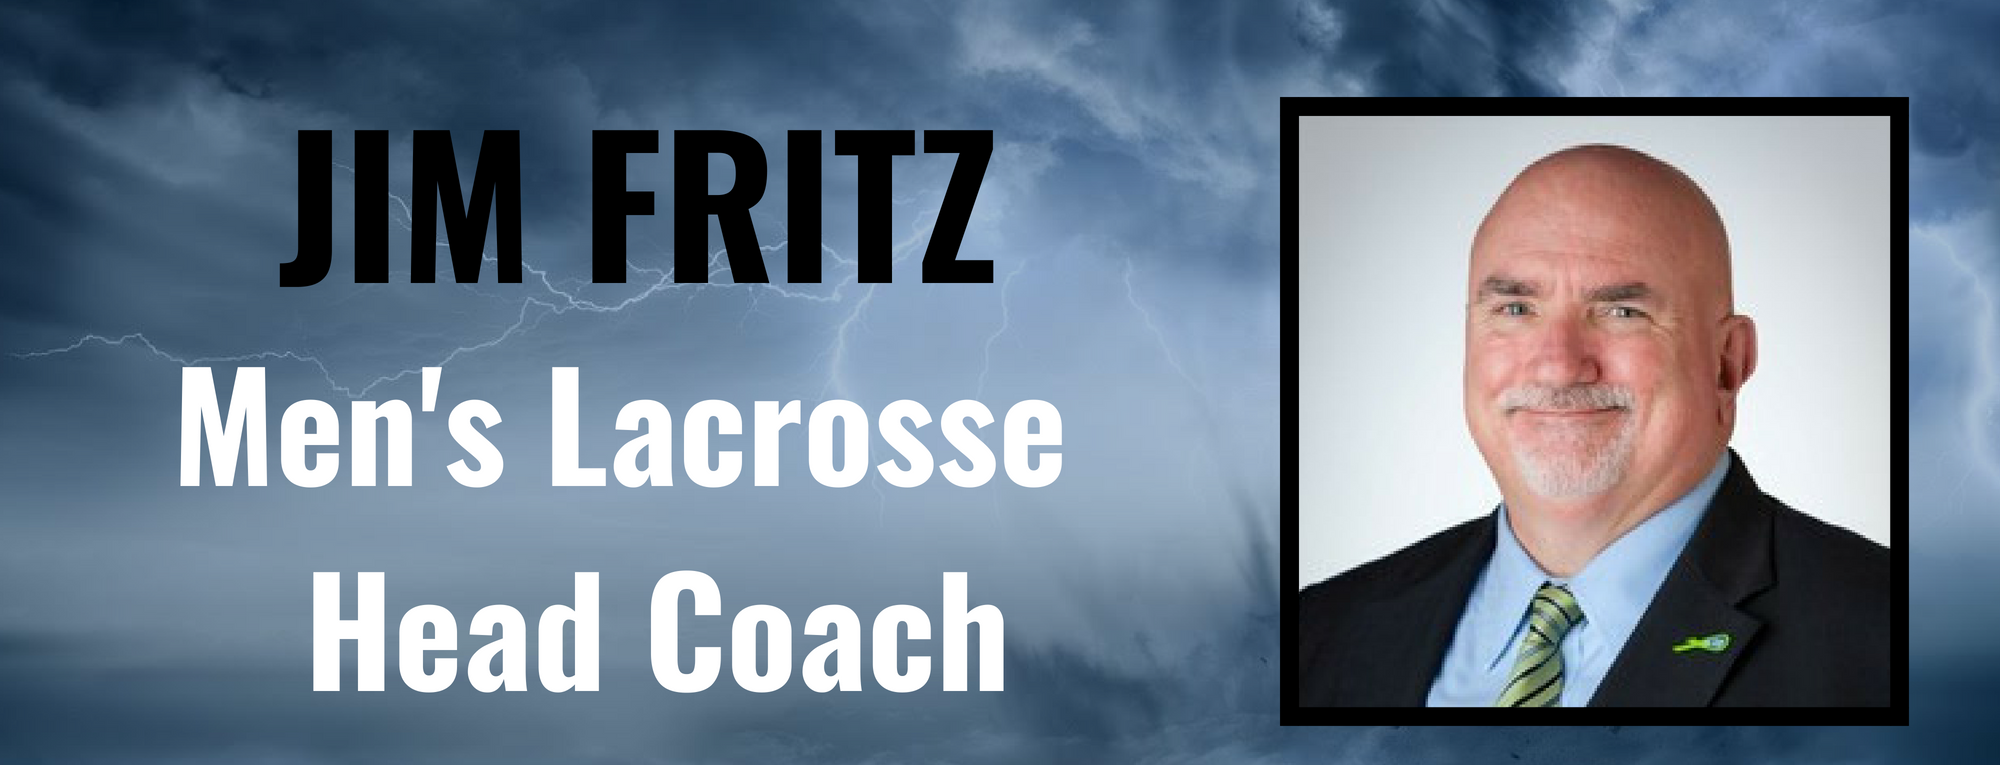 Jim Fritz Named Men's Lacrosse Head Coach